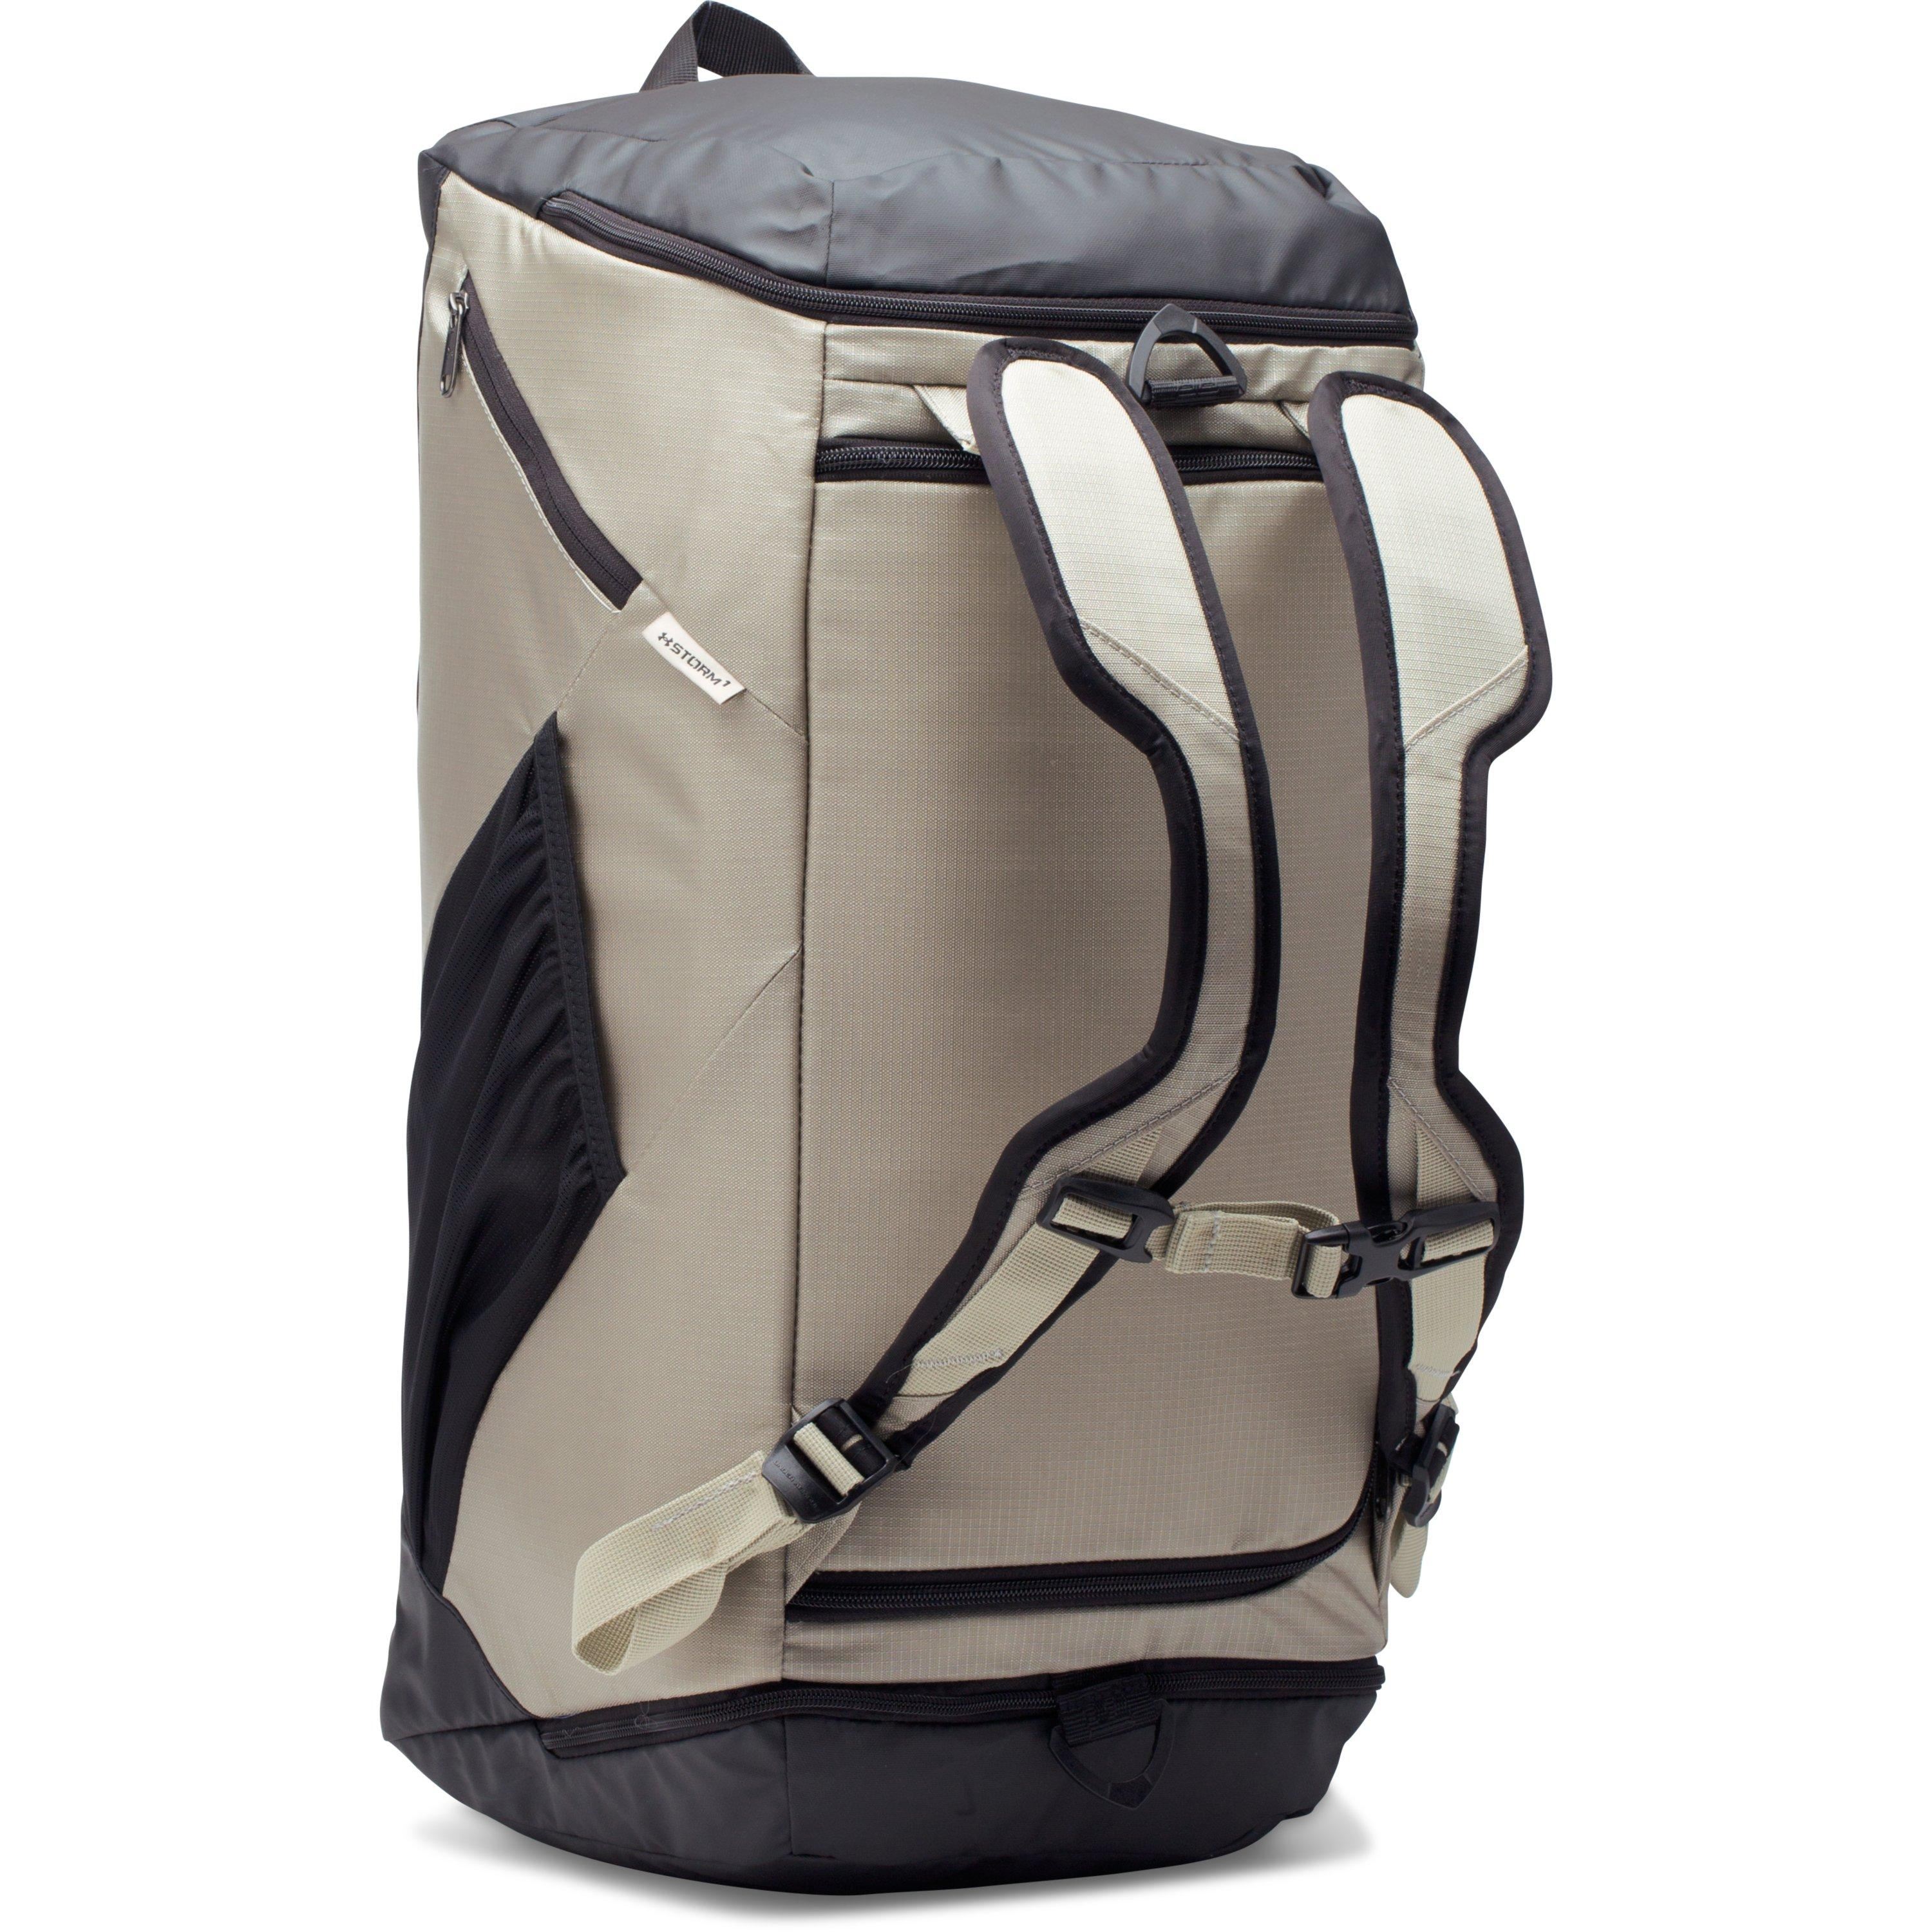 b37d65f1b7 Lyst - Under Armour Ua Storm Contain Backpack Duffle 3.0 for Men